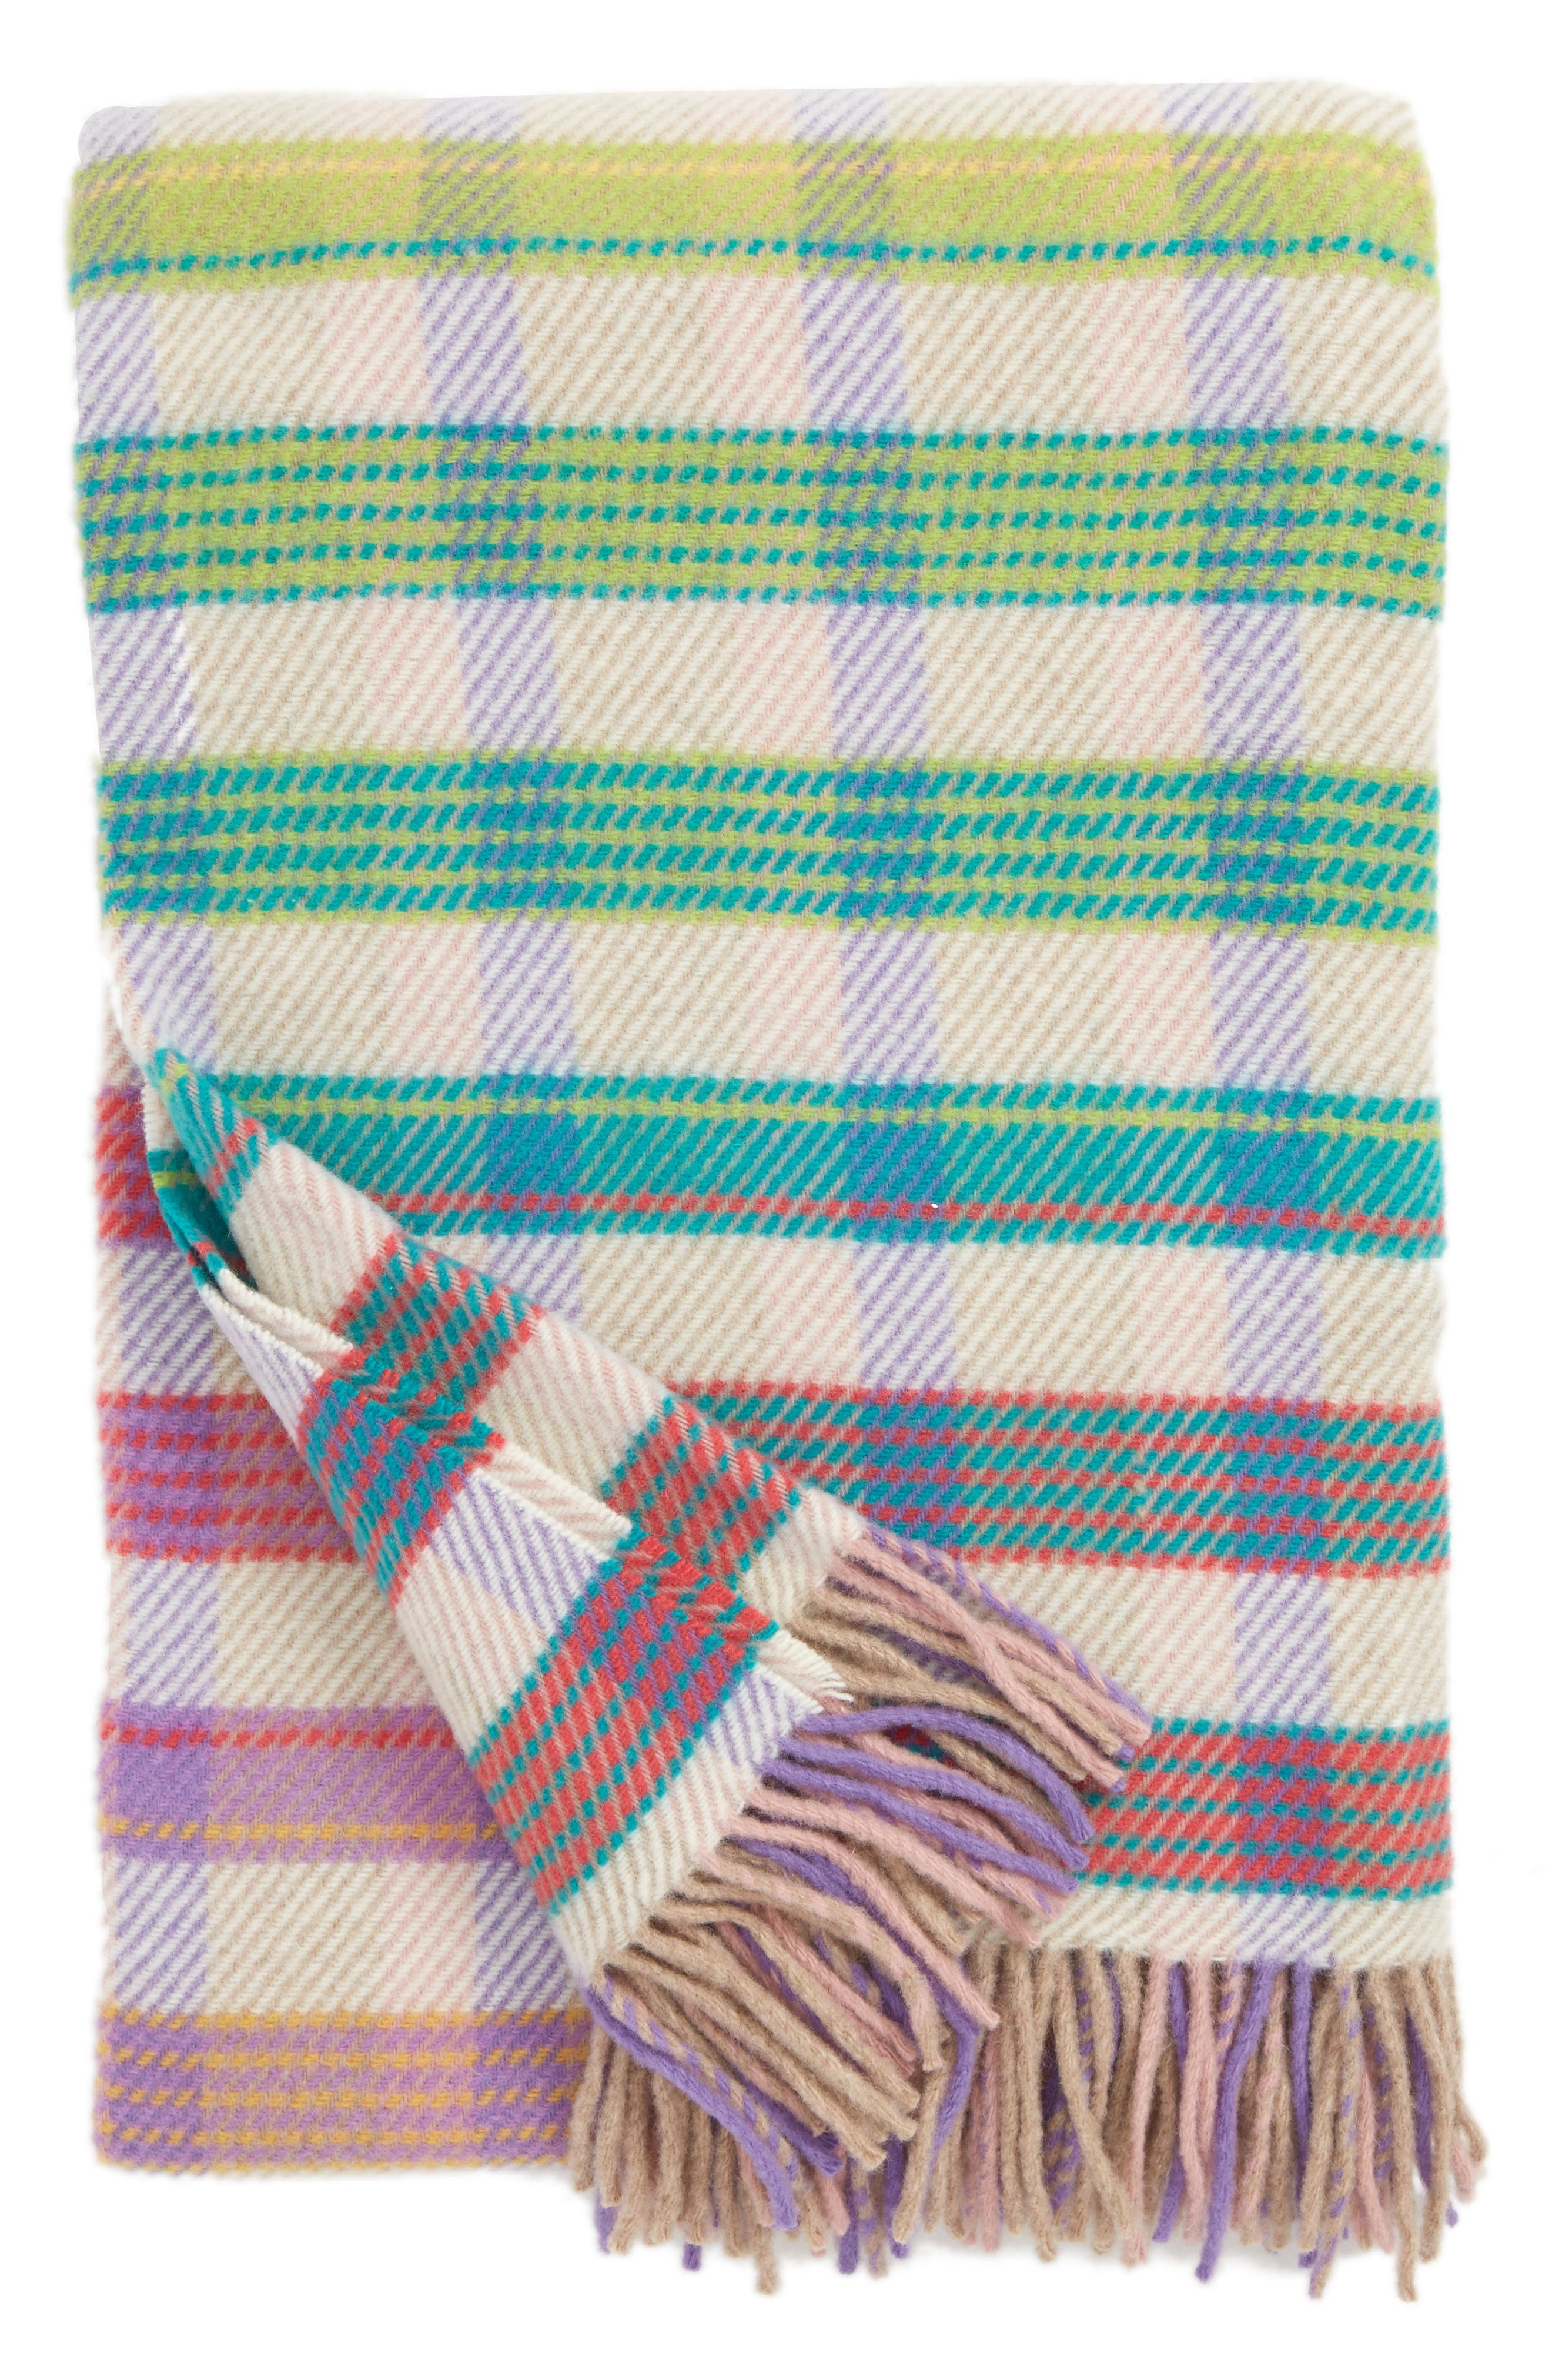 Tiziano Wool Throw Blanket,                         Main,                         color, 250